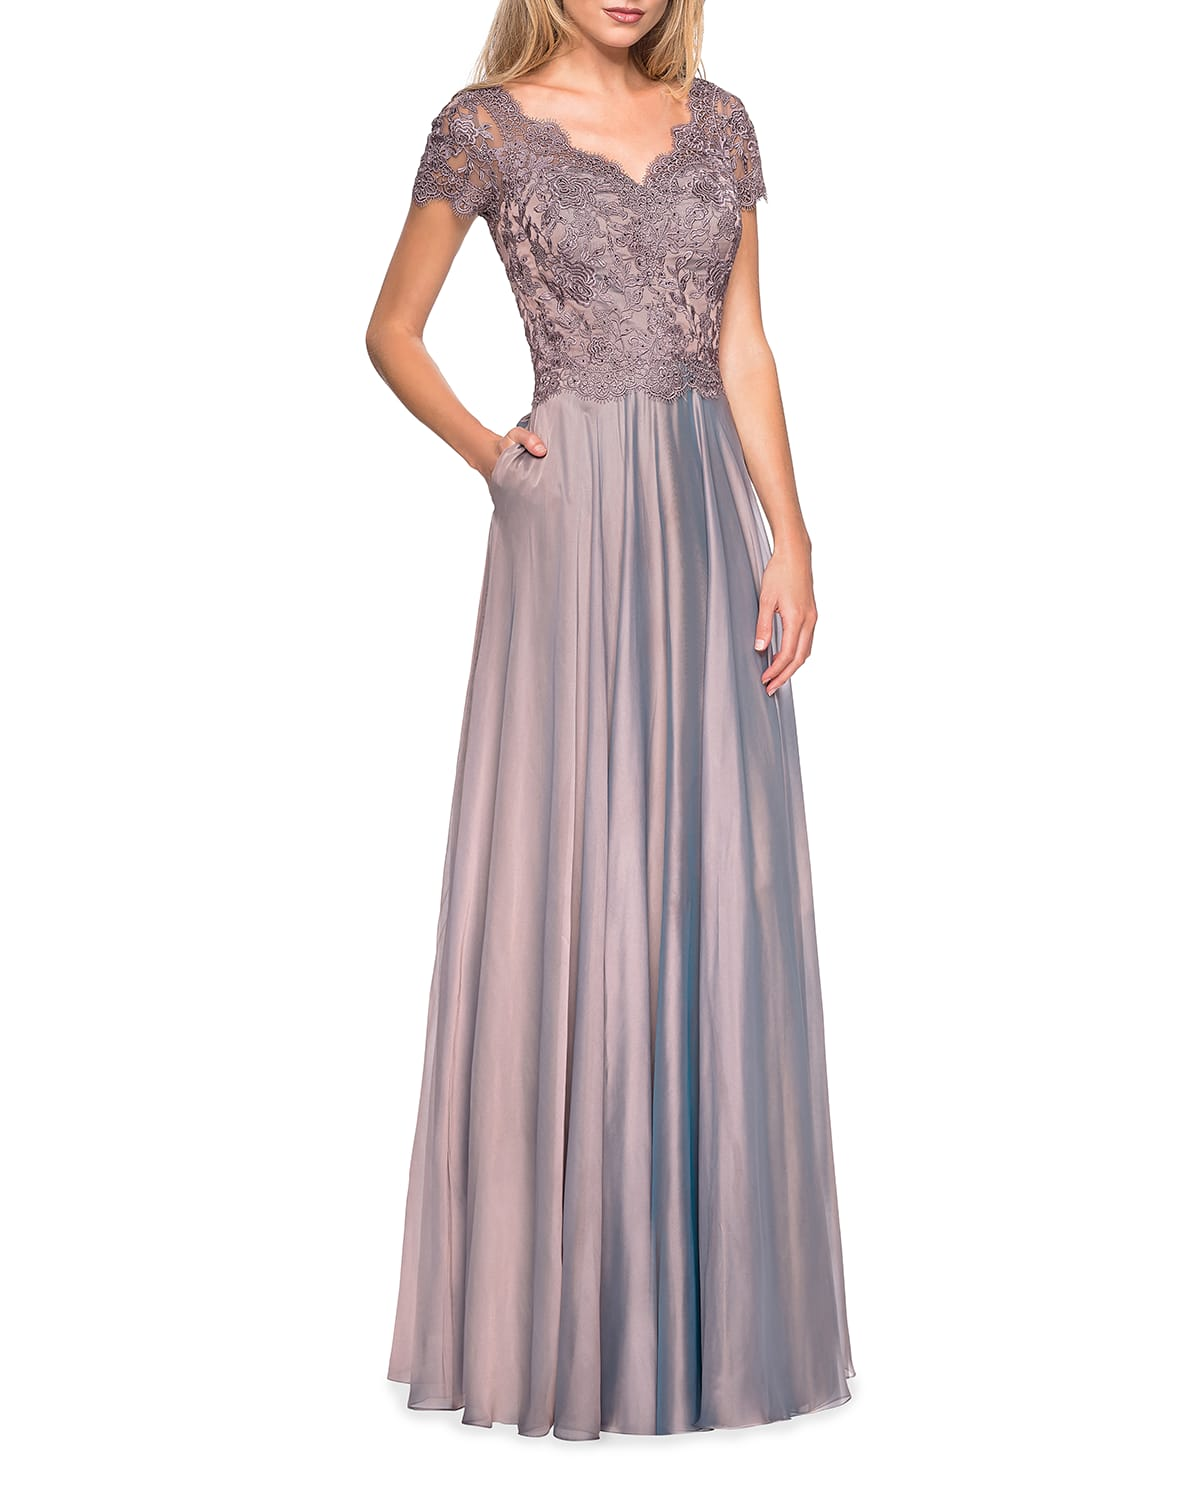 Lace Bodice Chiffon A-Line Gown